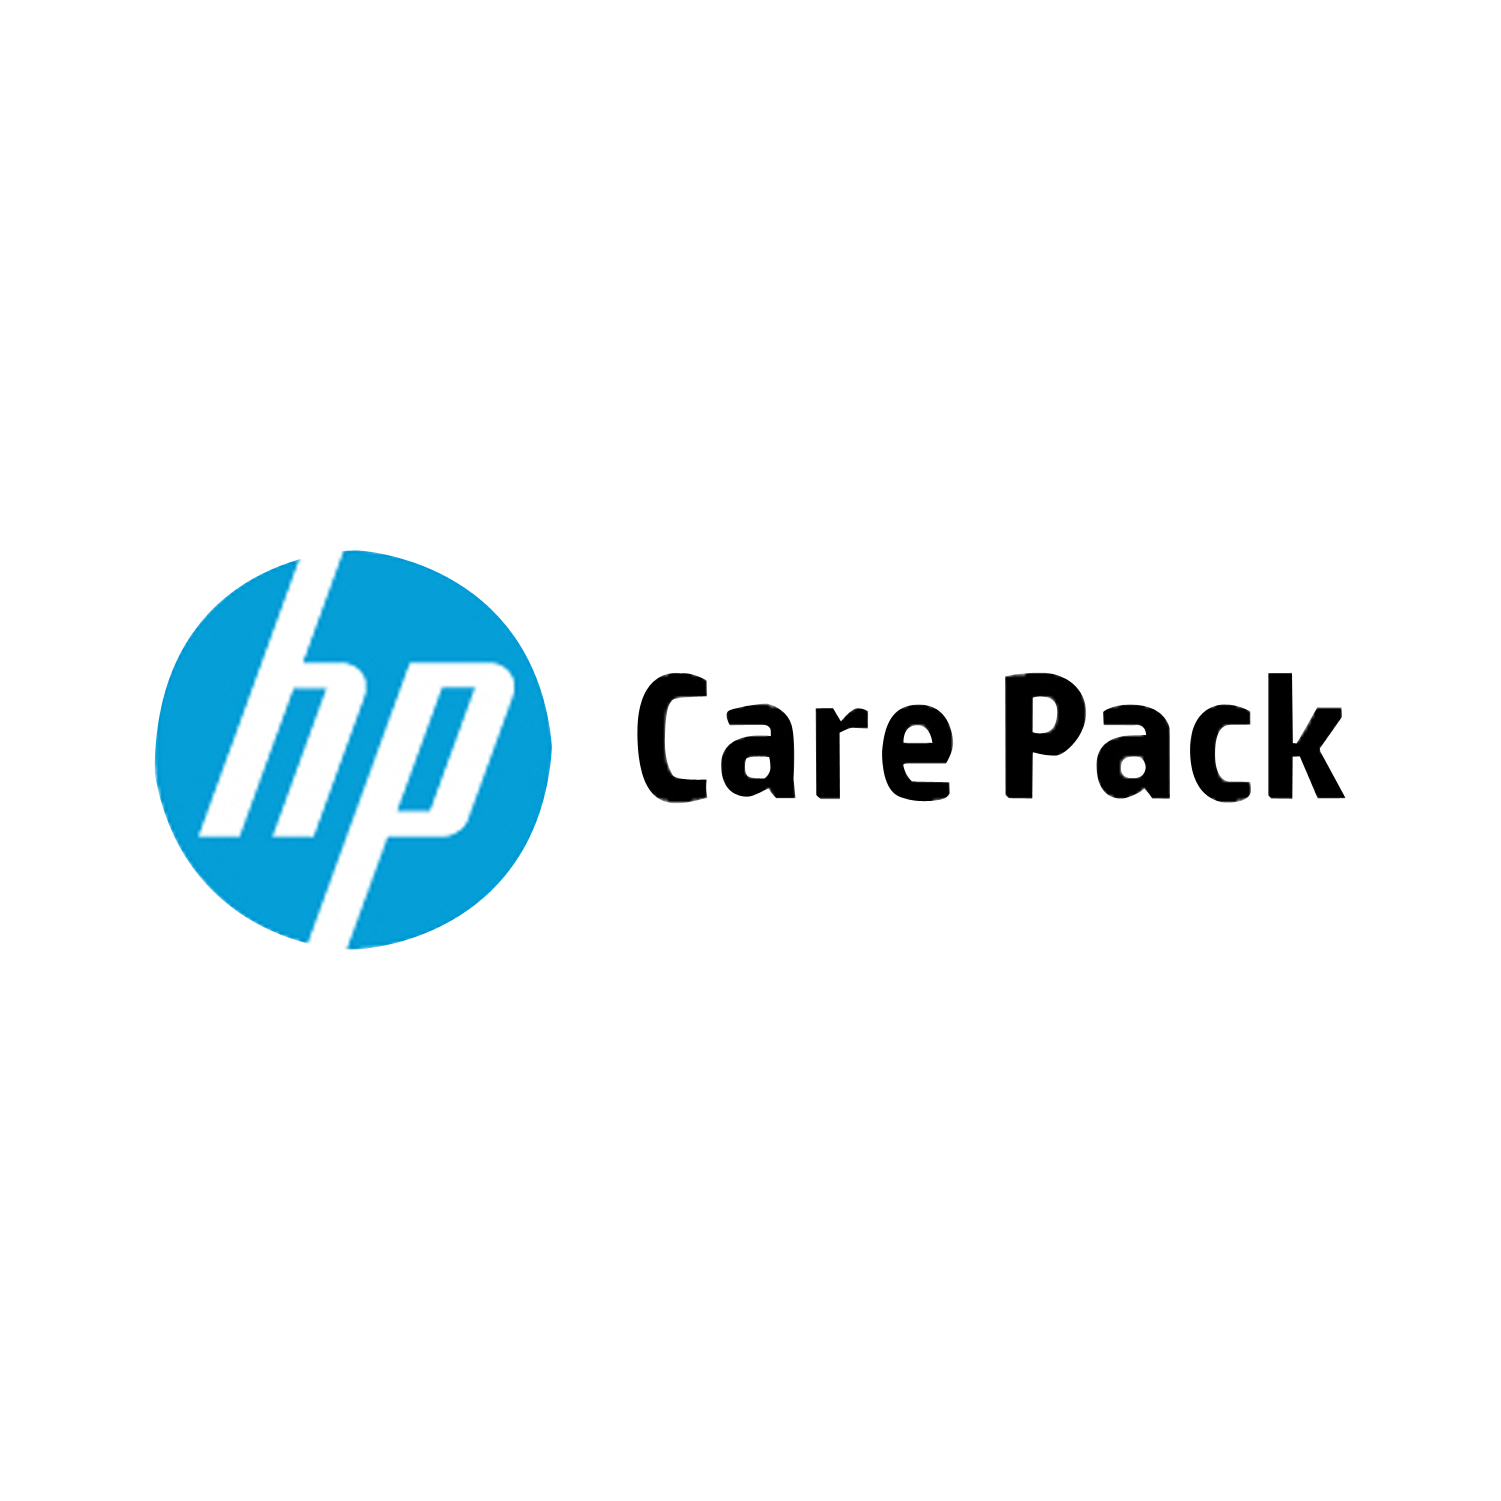 Electronic HP Care Pack Next Business Day Hardware Support - Extended Service Agreement - Parts And Labour - 4 Years - On-site - 9x5 - Response Time: NBD - For LaserJet Pro 400 MFP M425dn U4T - C2000